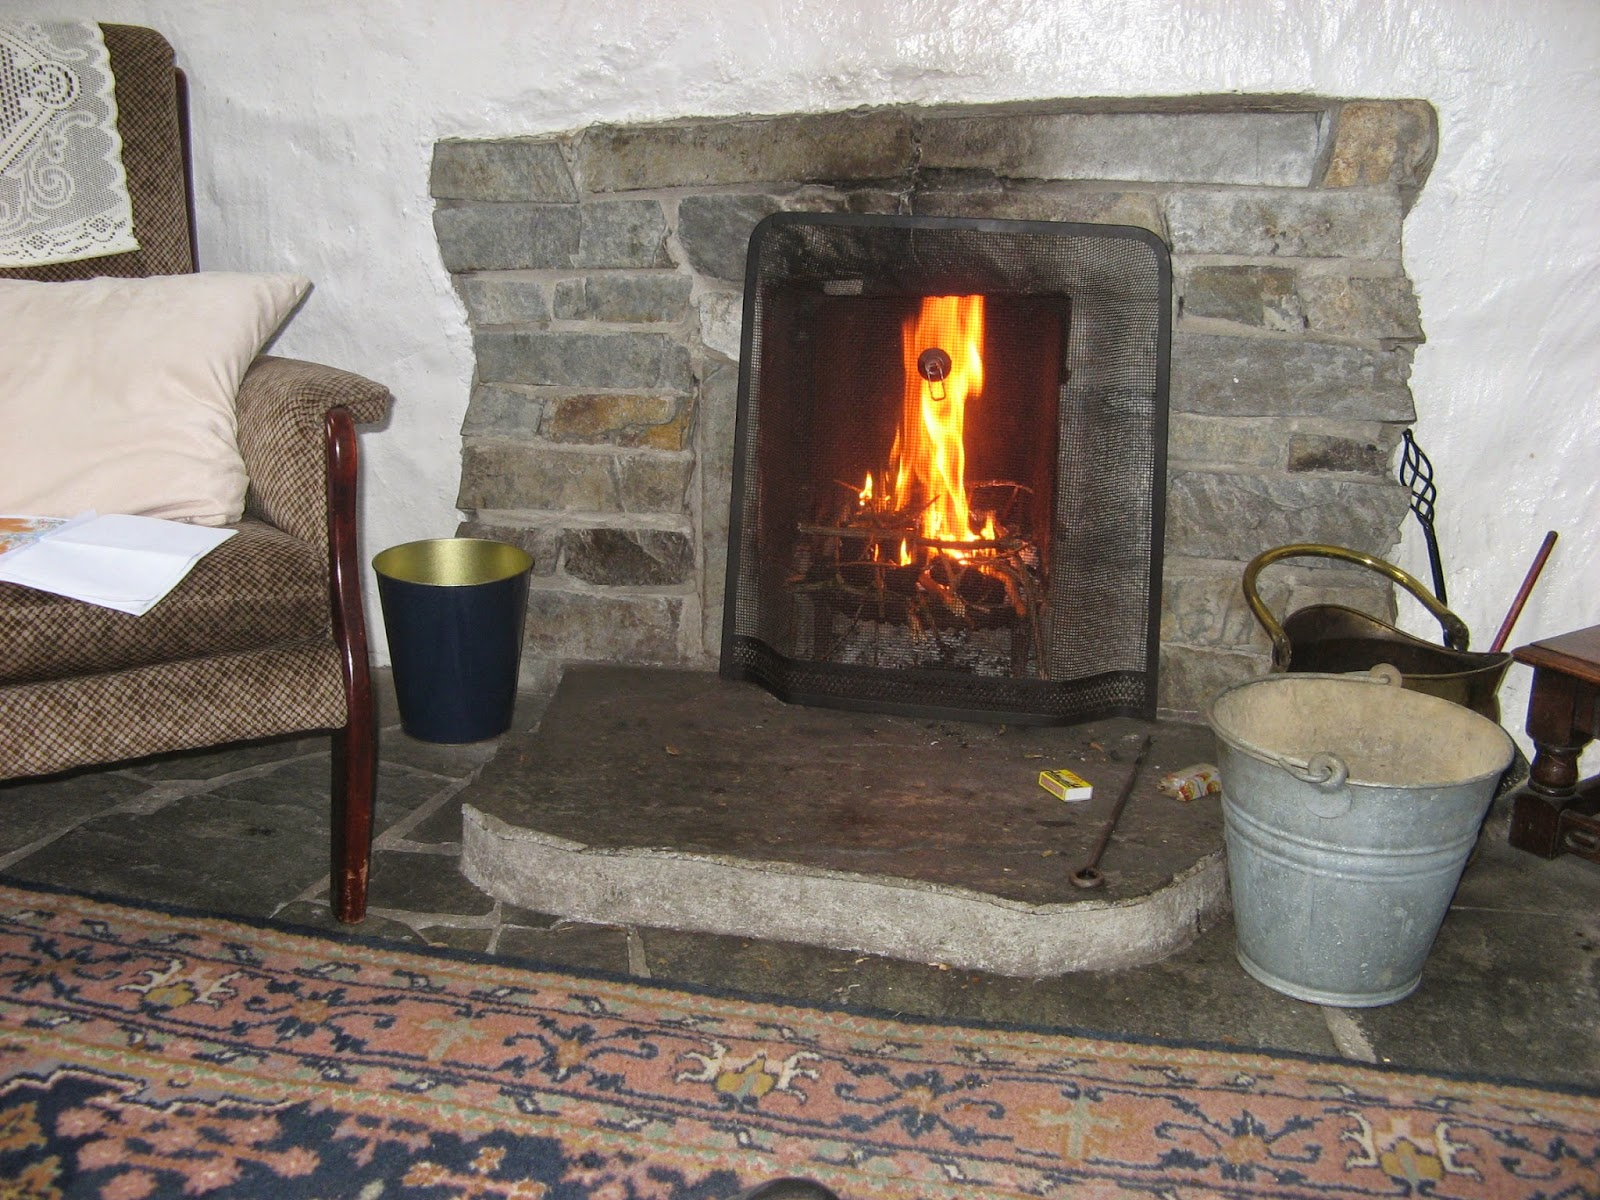 stone fireplace and a coal fire